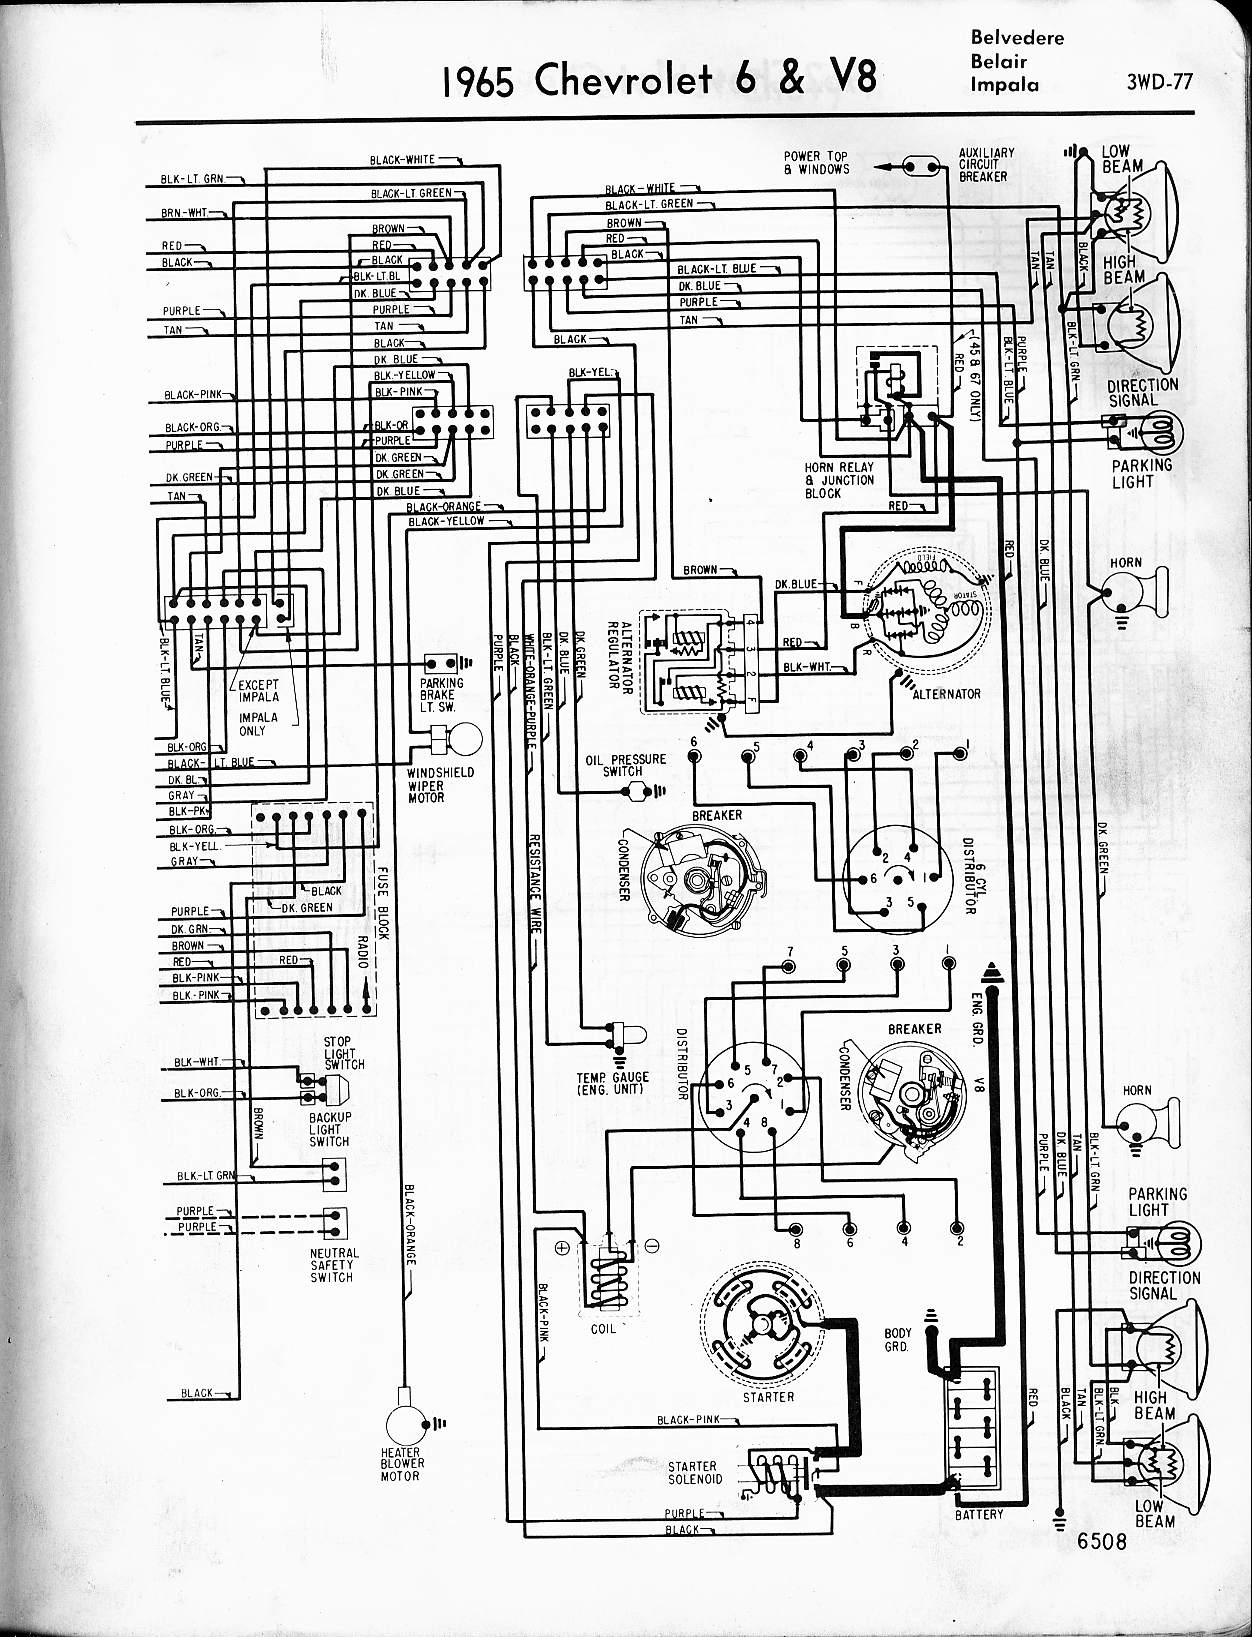 1970 Chevy Chevelle Wiring Diagram Schematics Diagrams Mercury Marauder Rh Wizard Com Ss 70